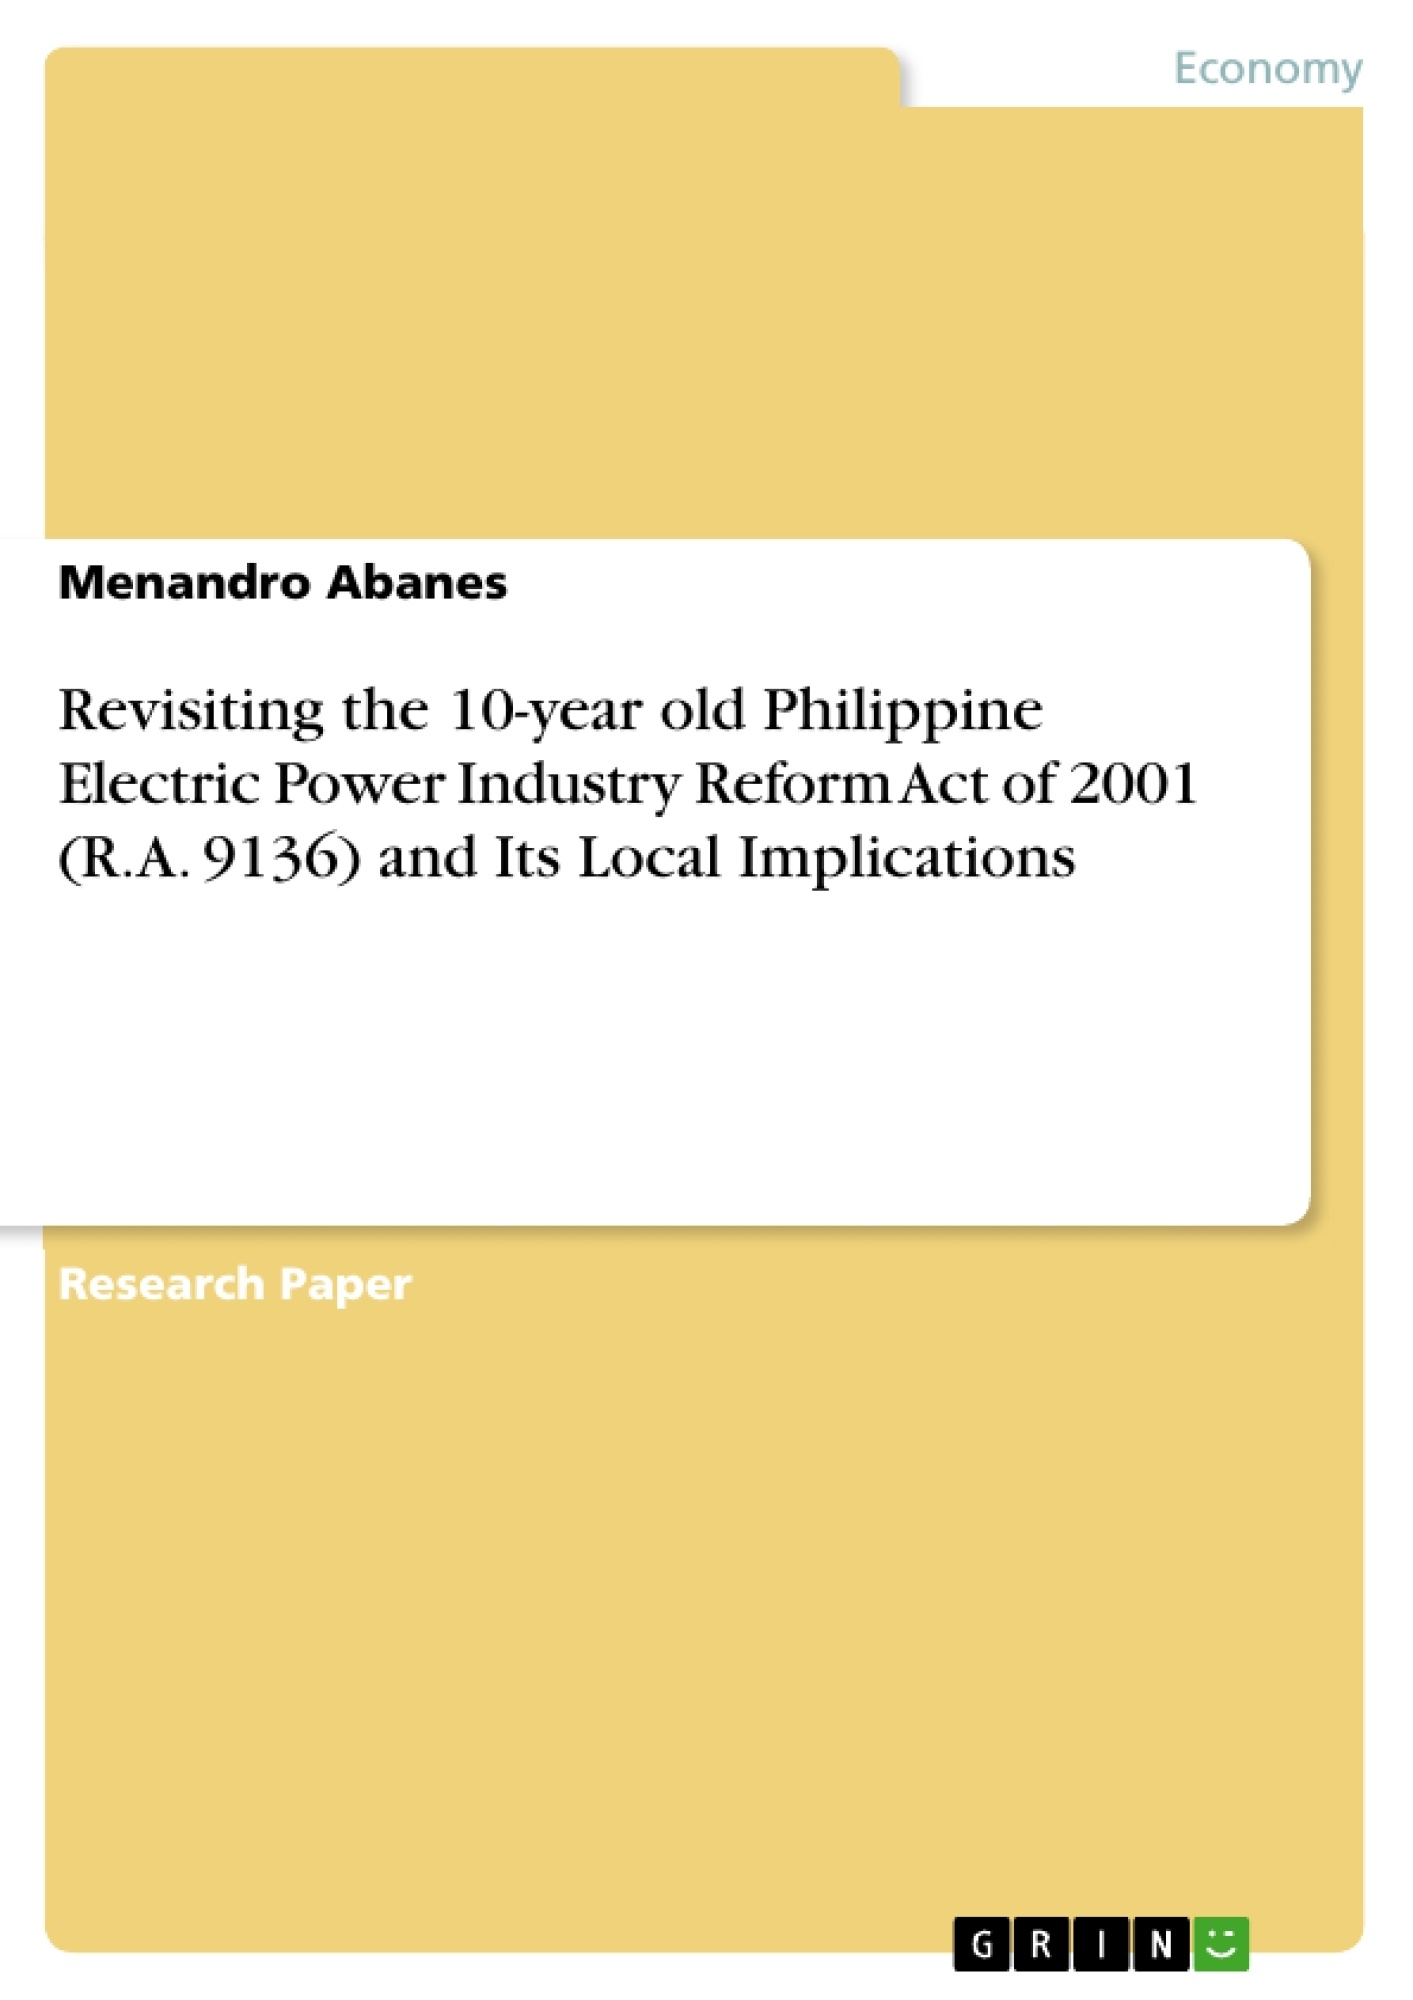 Title: Revisiting the 10-year old Philippine Electric Power Industry Reform Act of 2001 (R.A. 9136) and Its Local Implications